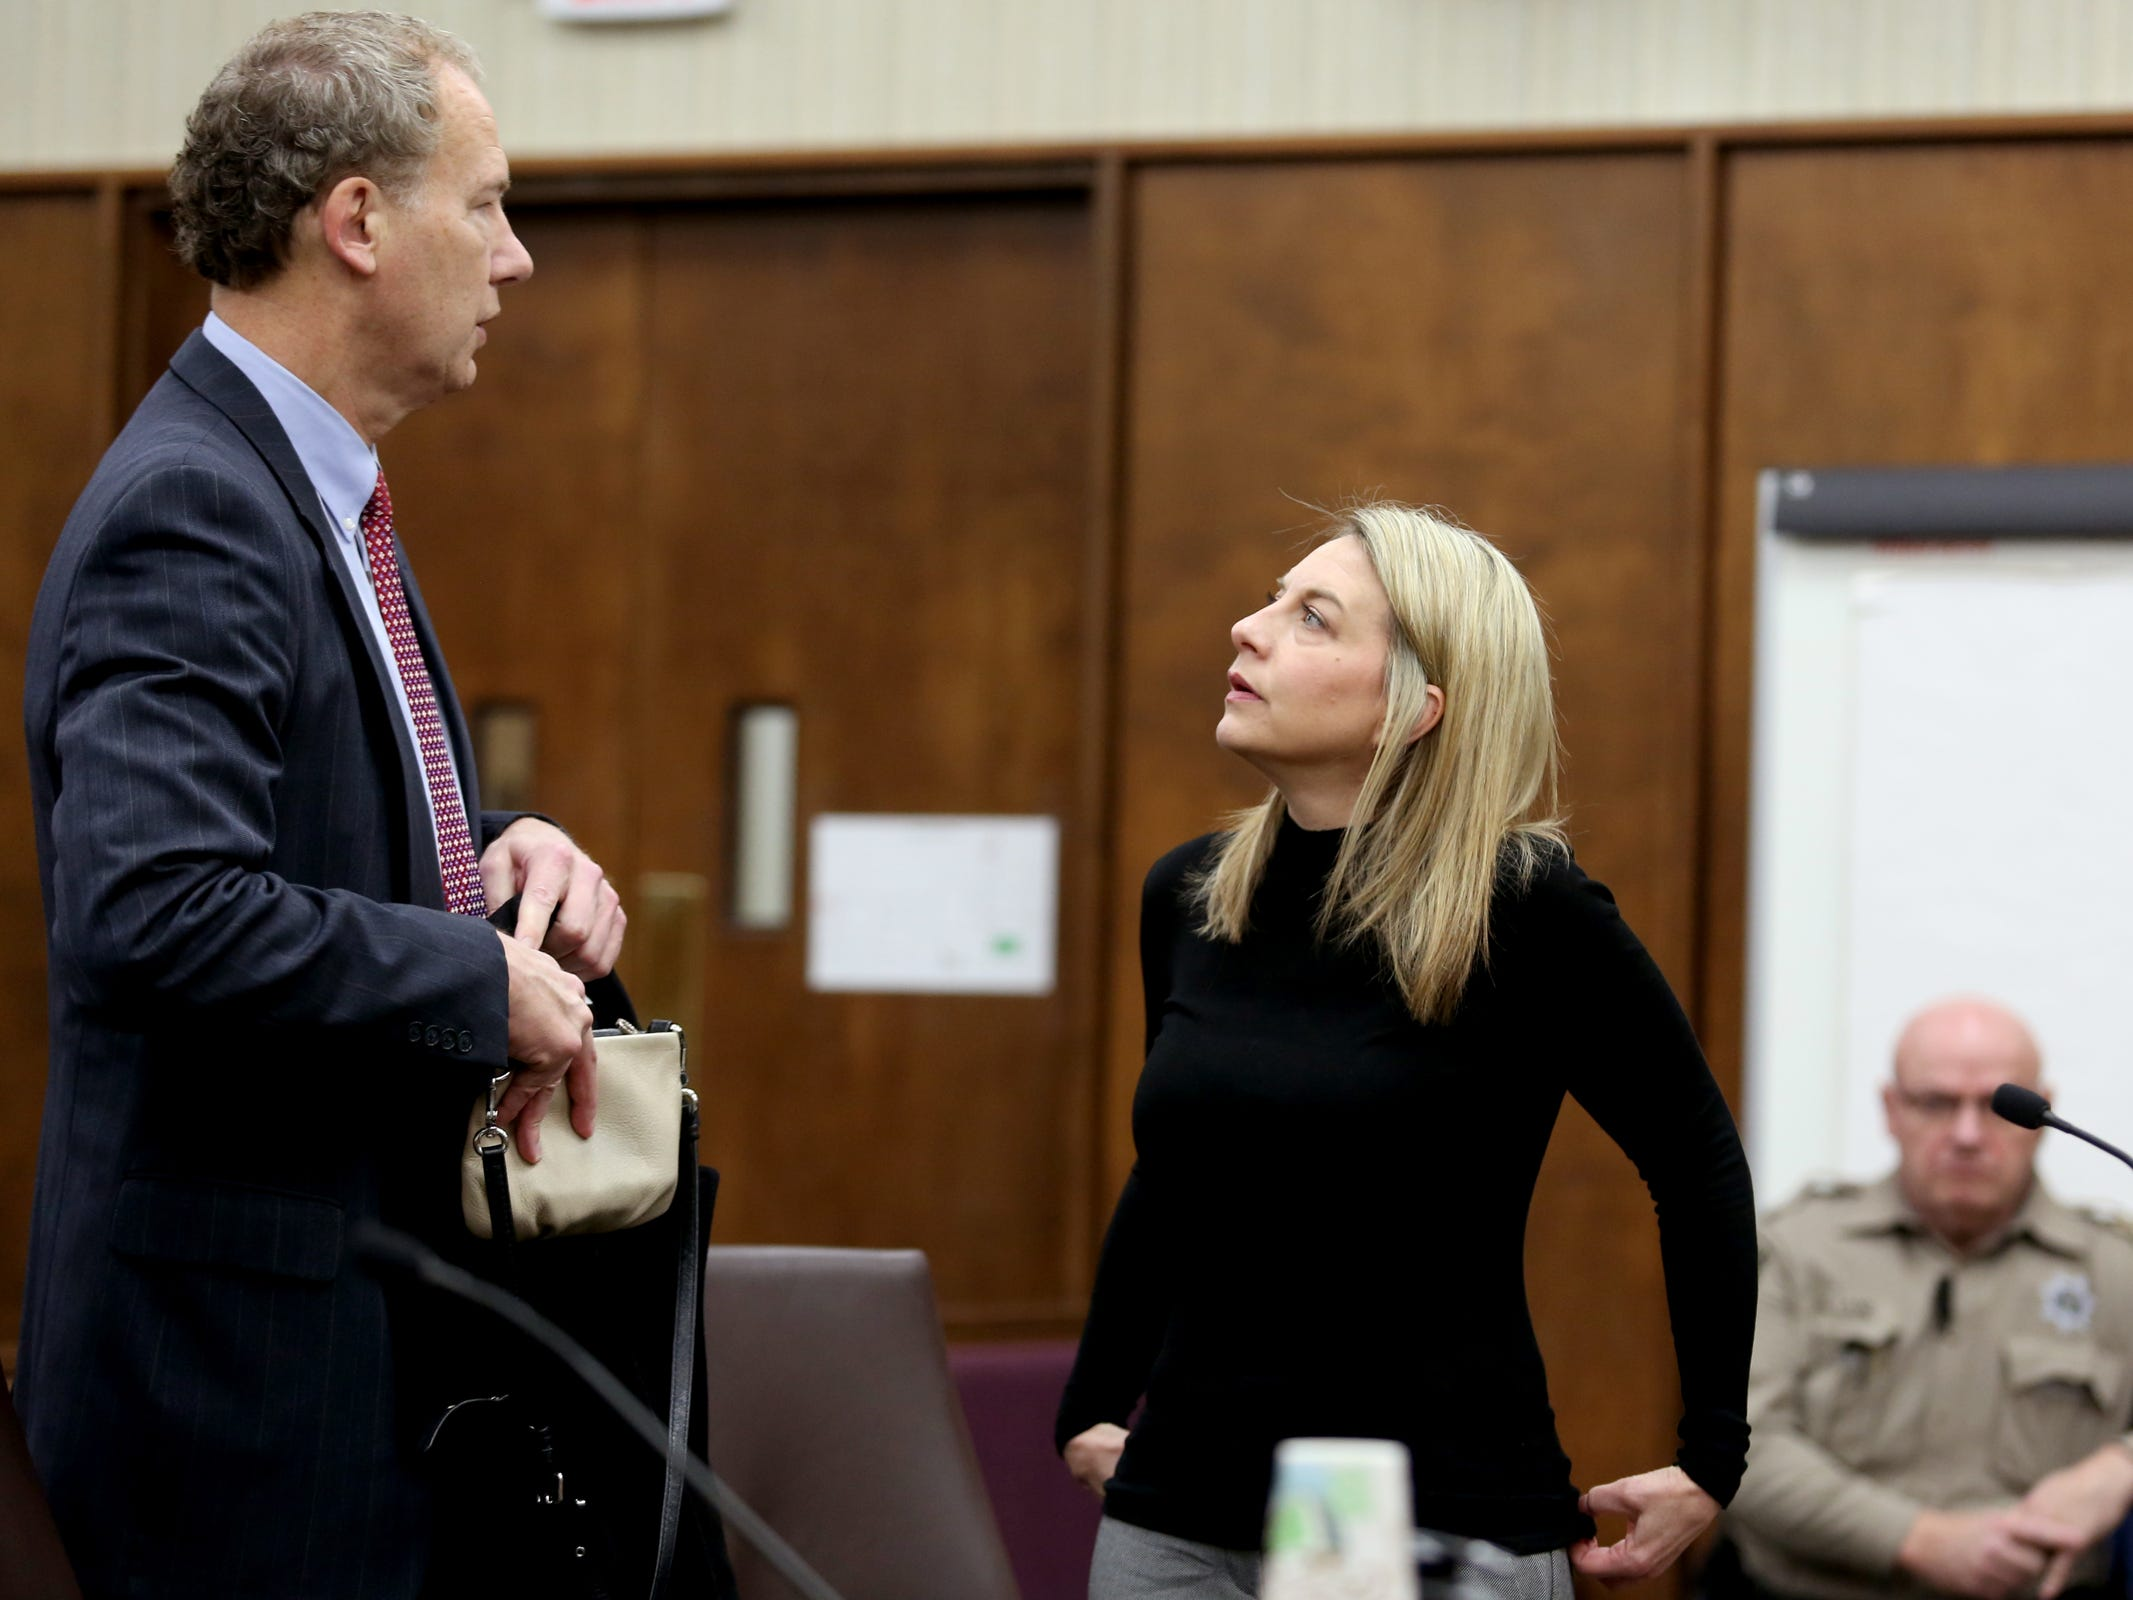 Jennifer Weathers speaks with her attorney, Walter Todd, before entering a guilty plea for driving under the influence on the night of her daughter's death in 2018 at the Yamhill County Courthouse in McMinnville on Tuesday, Feb. 5, 2019. Meighan Cordie died from blunt force trauma after jumping or falling out of the car her mother was driving while her 3-year-old daughter was also in the vehicle.